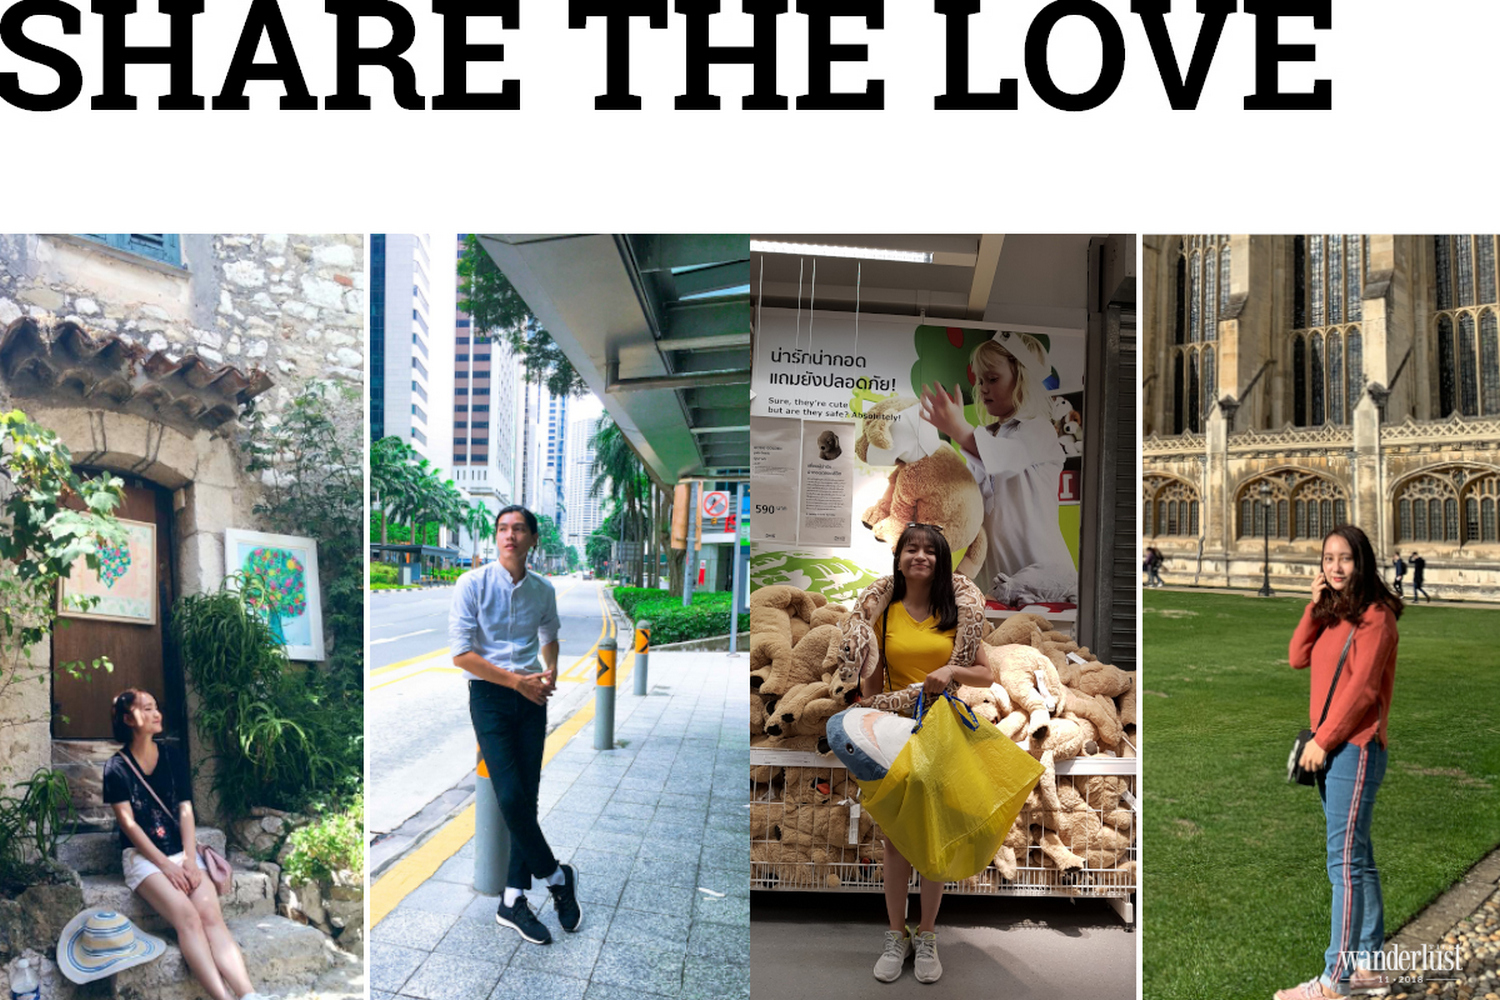 Share the love: Shopping tourism